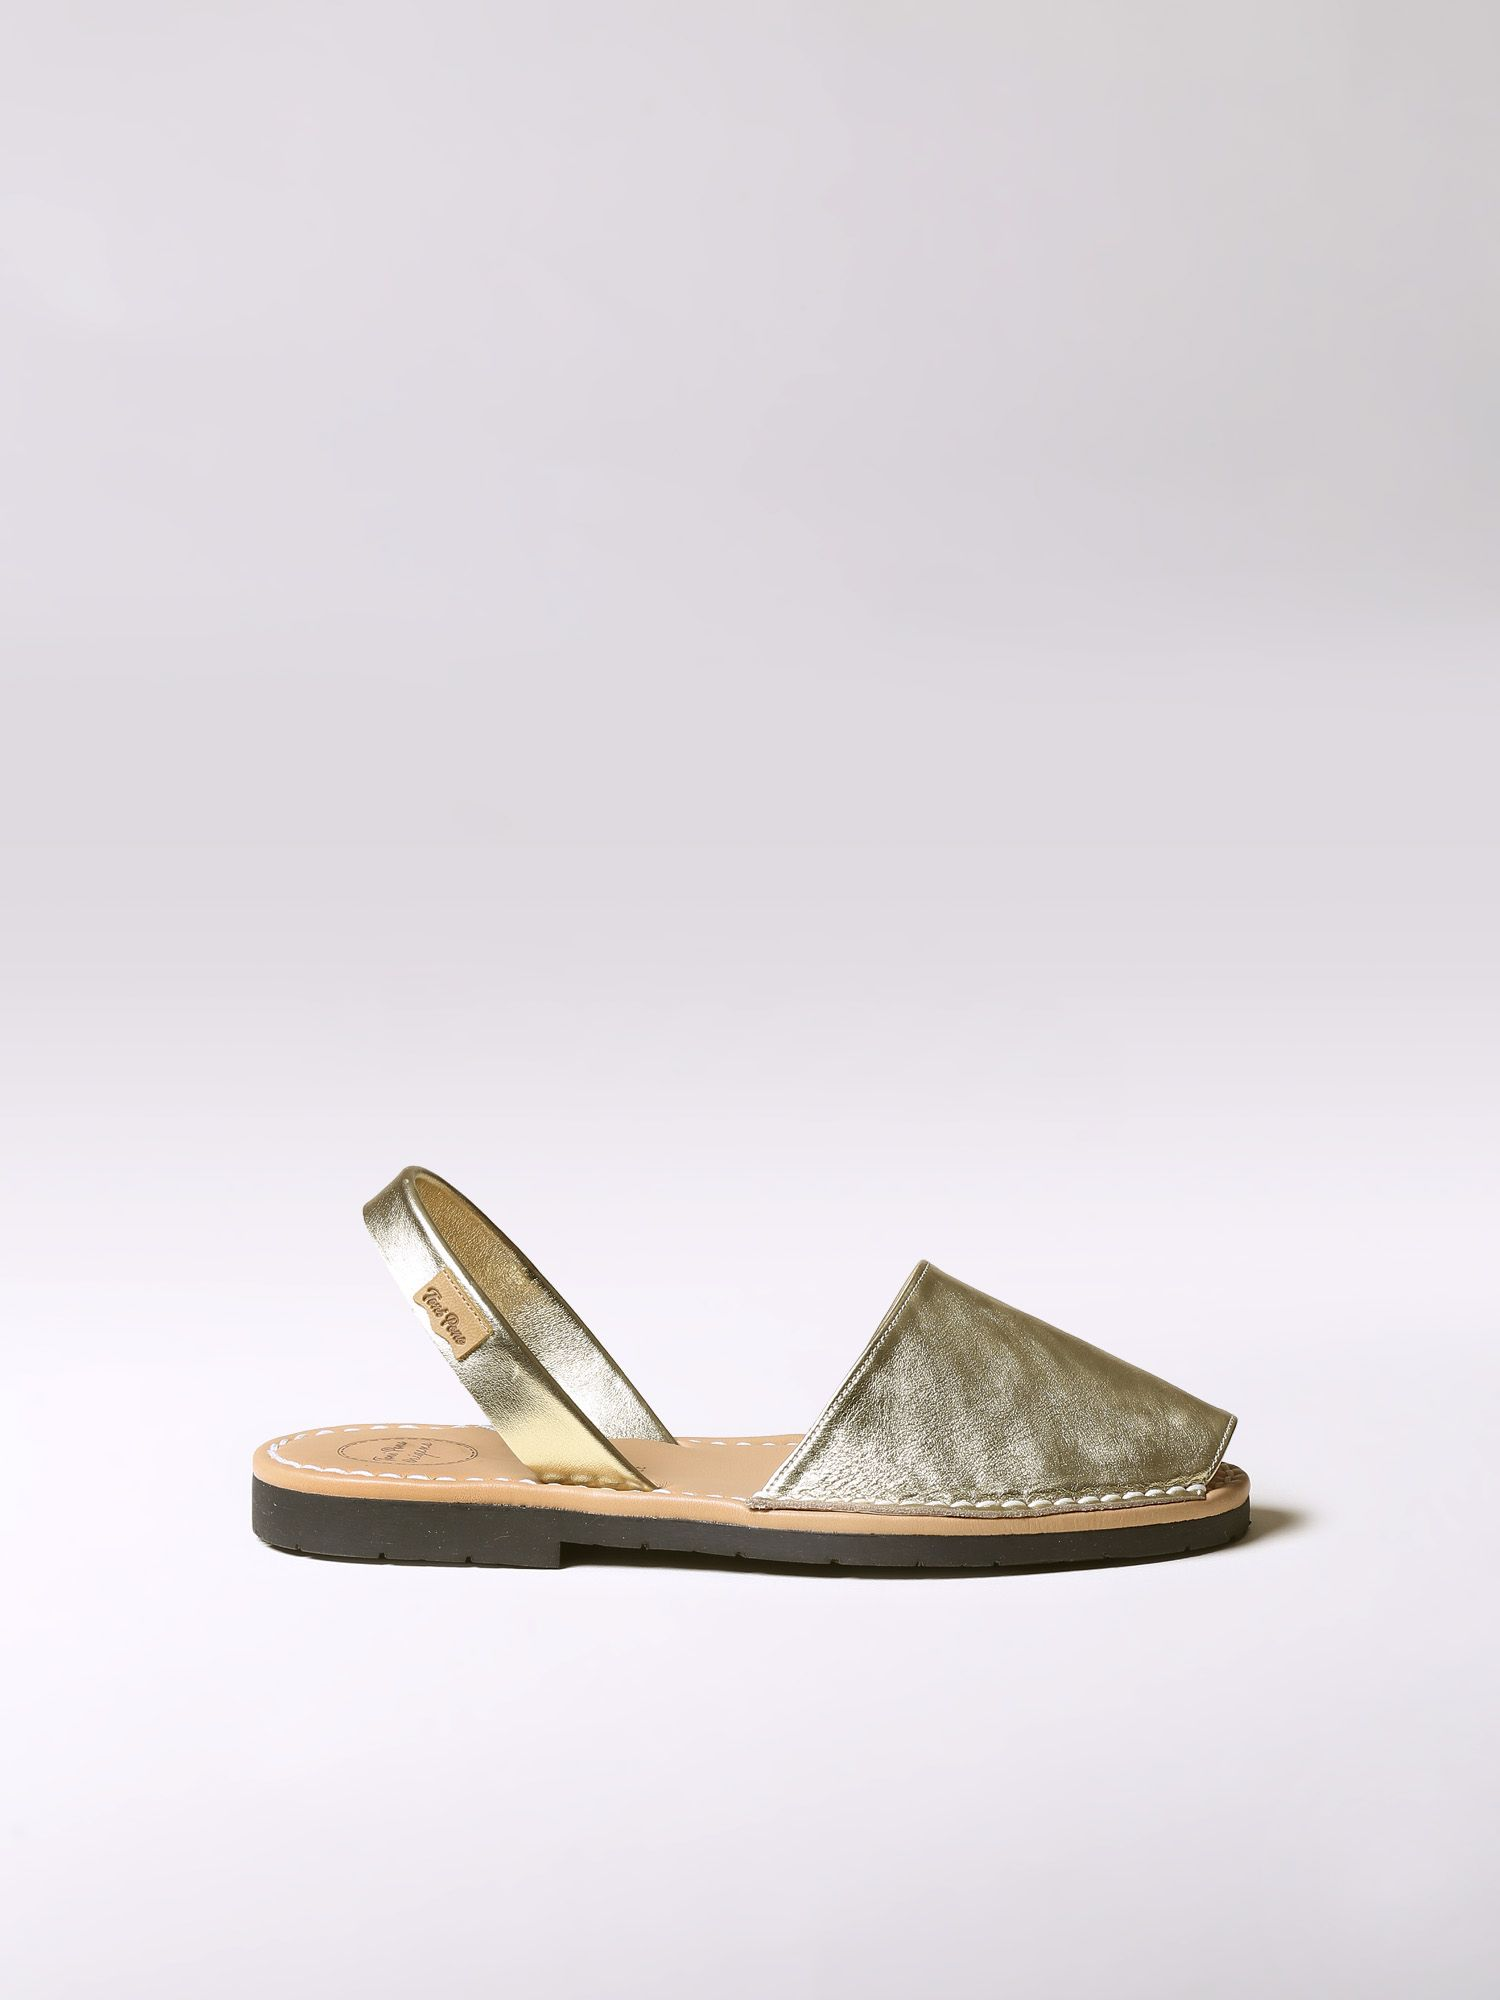 Leather avarca sandal - MAO-P